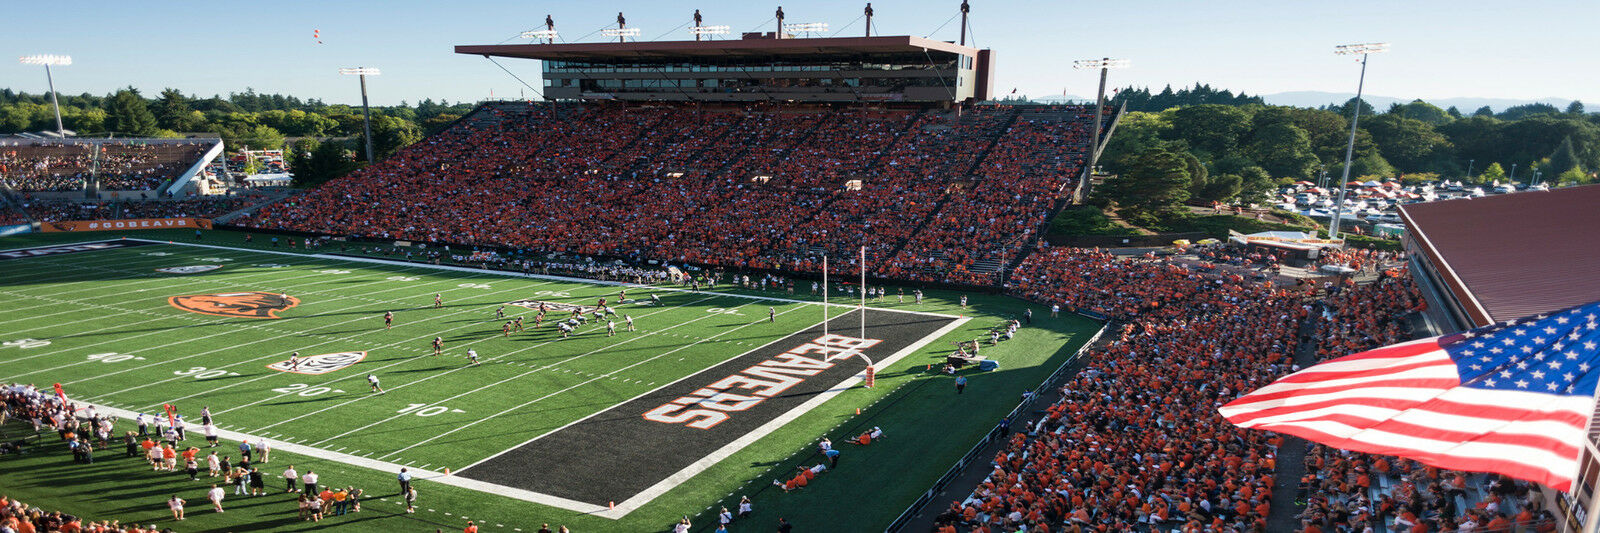 Minnesota Golden Gophers at Oregon State Beavers Football